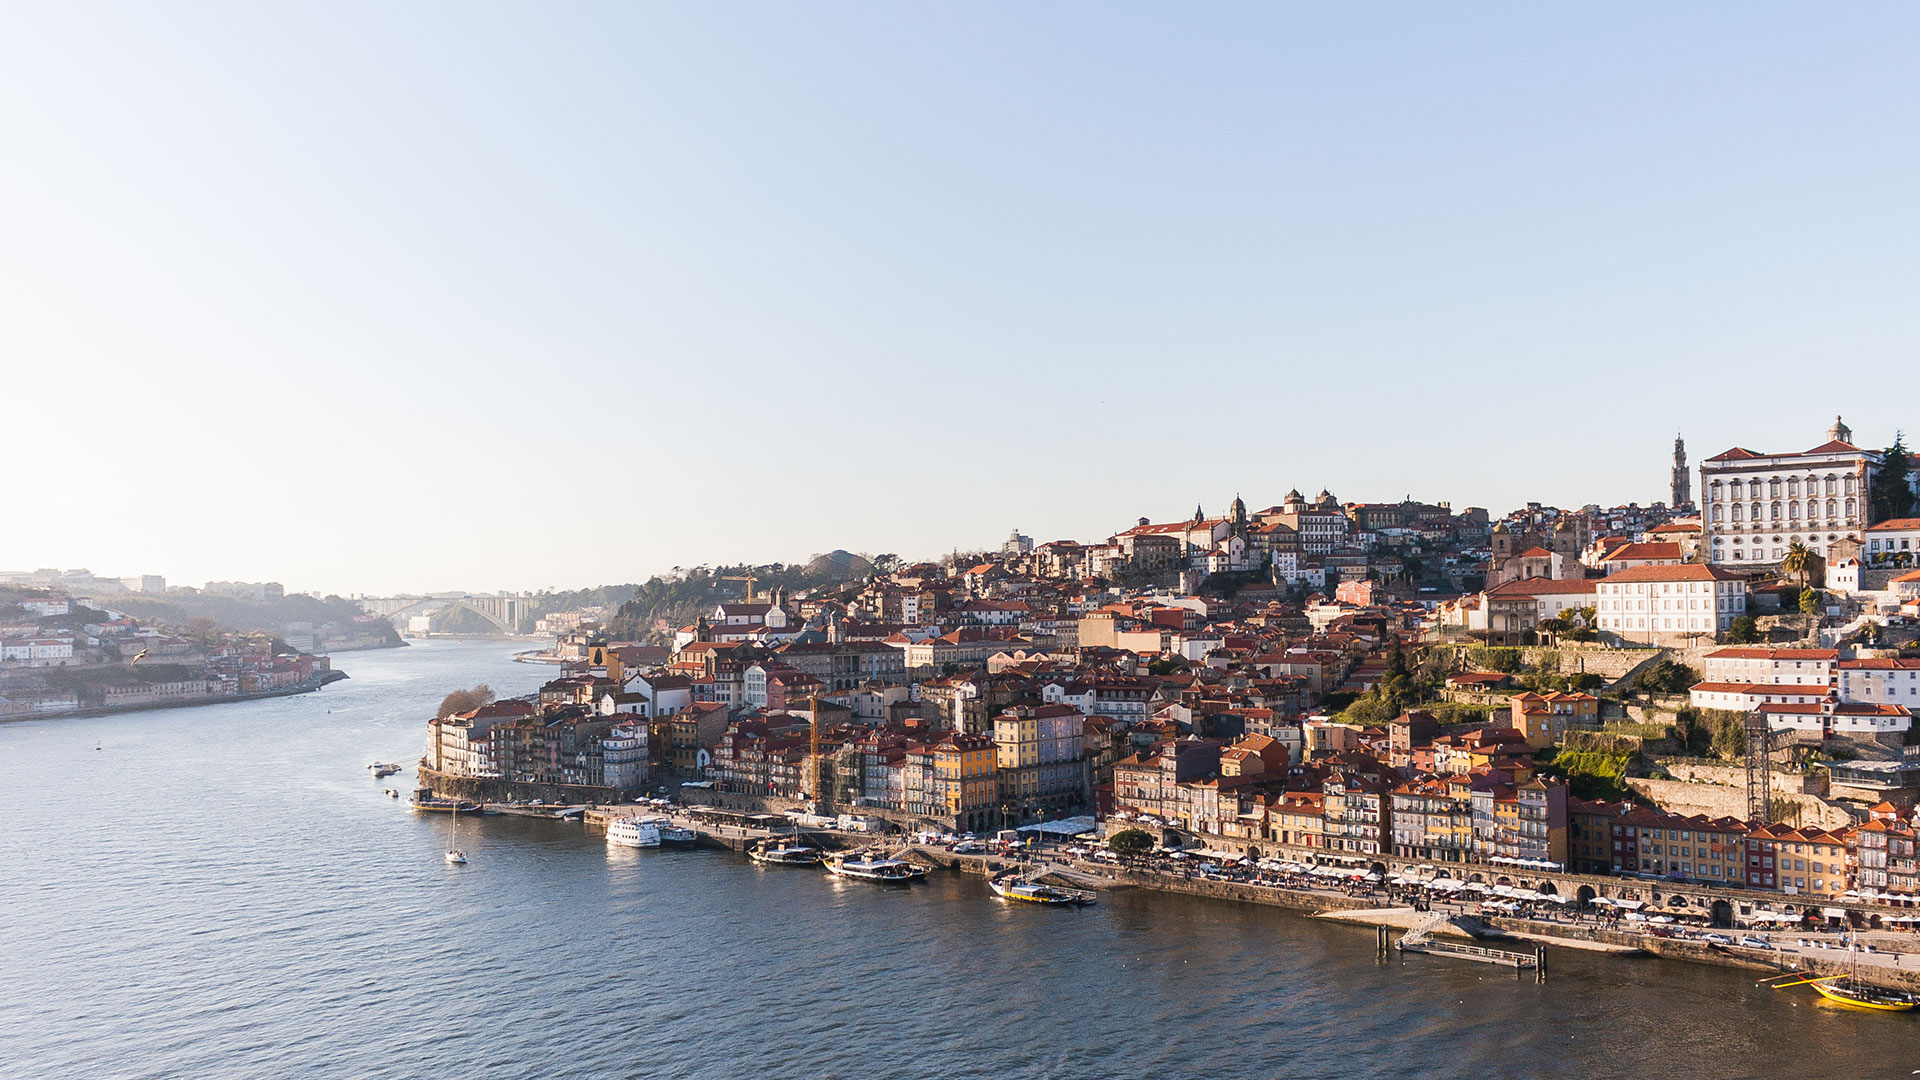 View from the top of Dom Luis bridge | 4 postcard perfect images: first impressions of Porto.